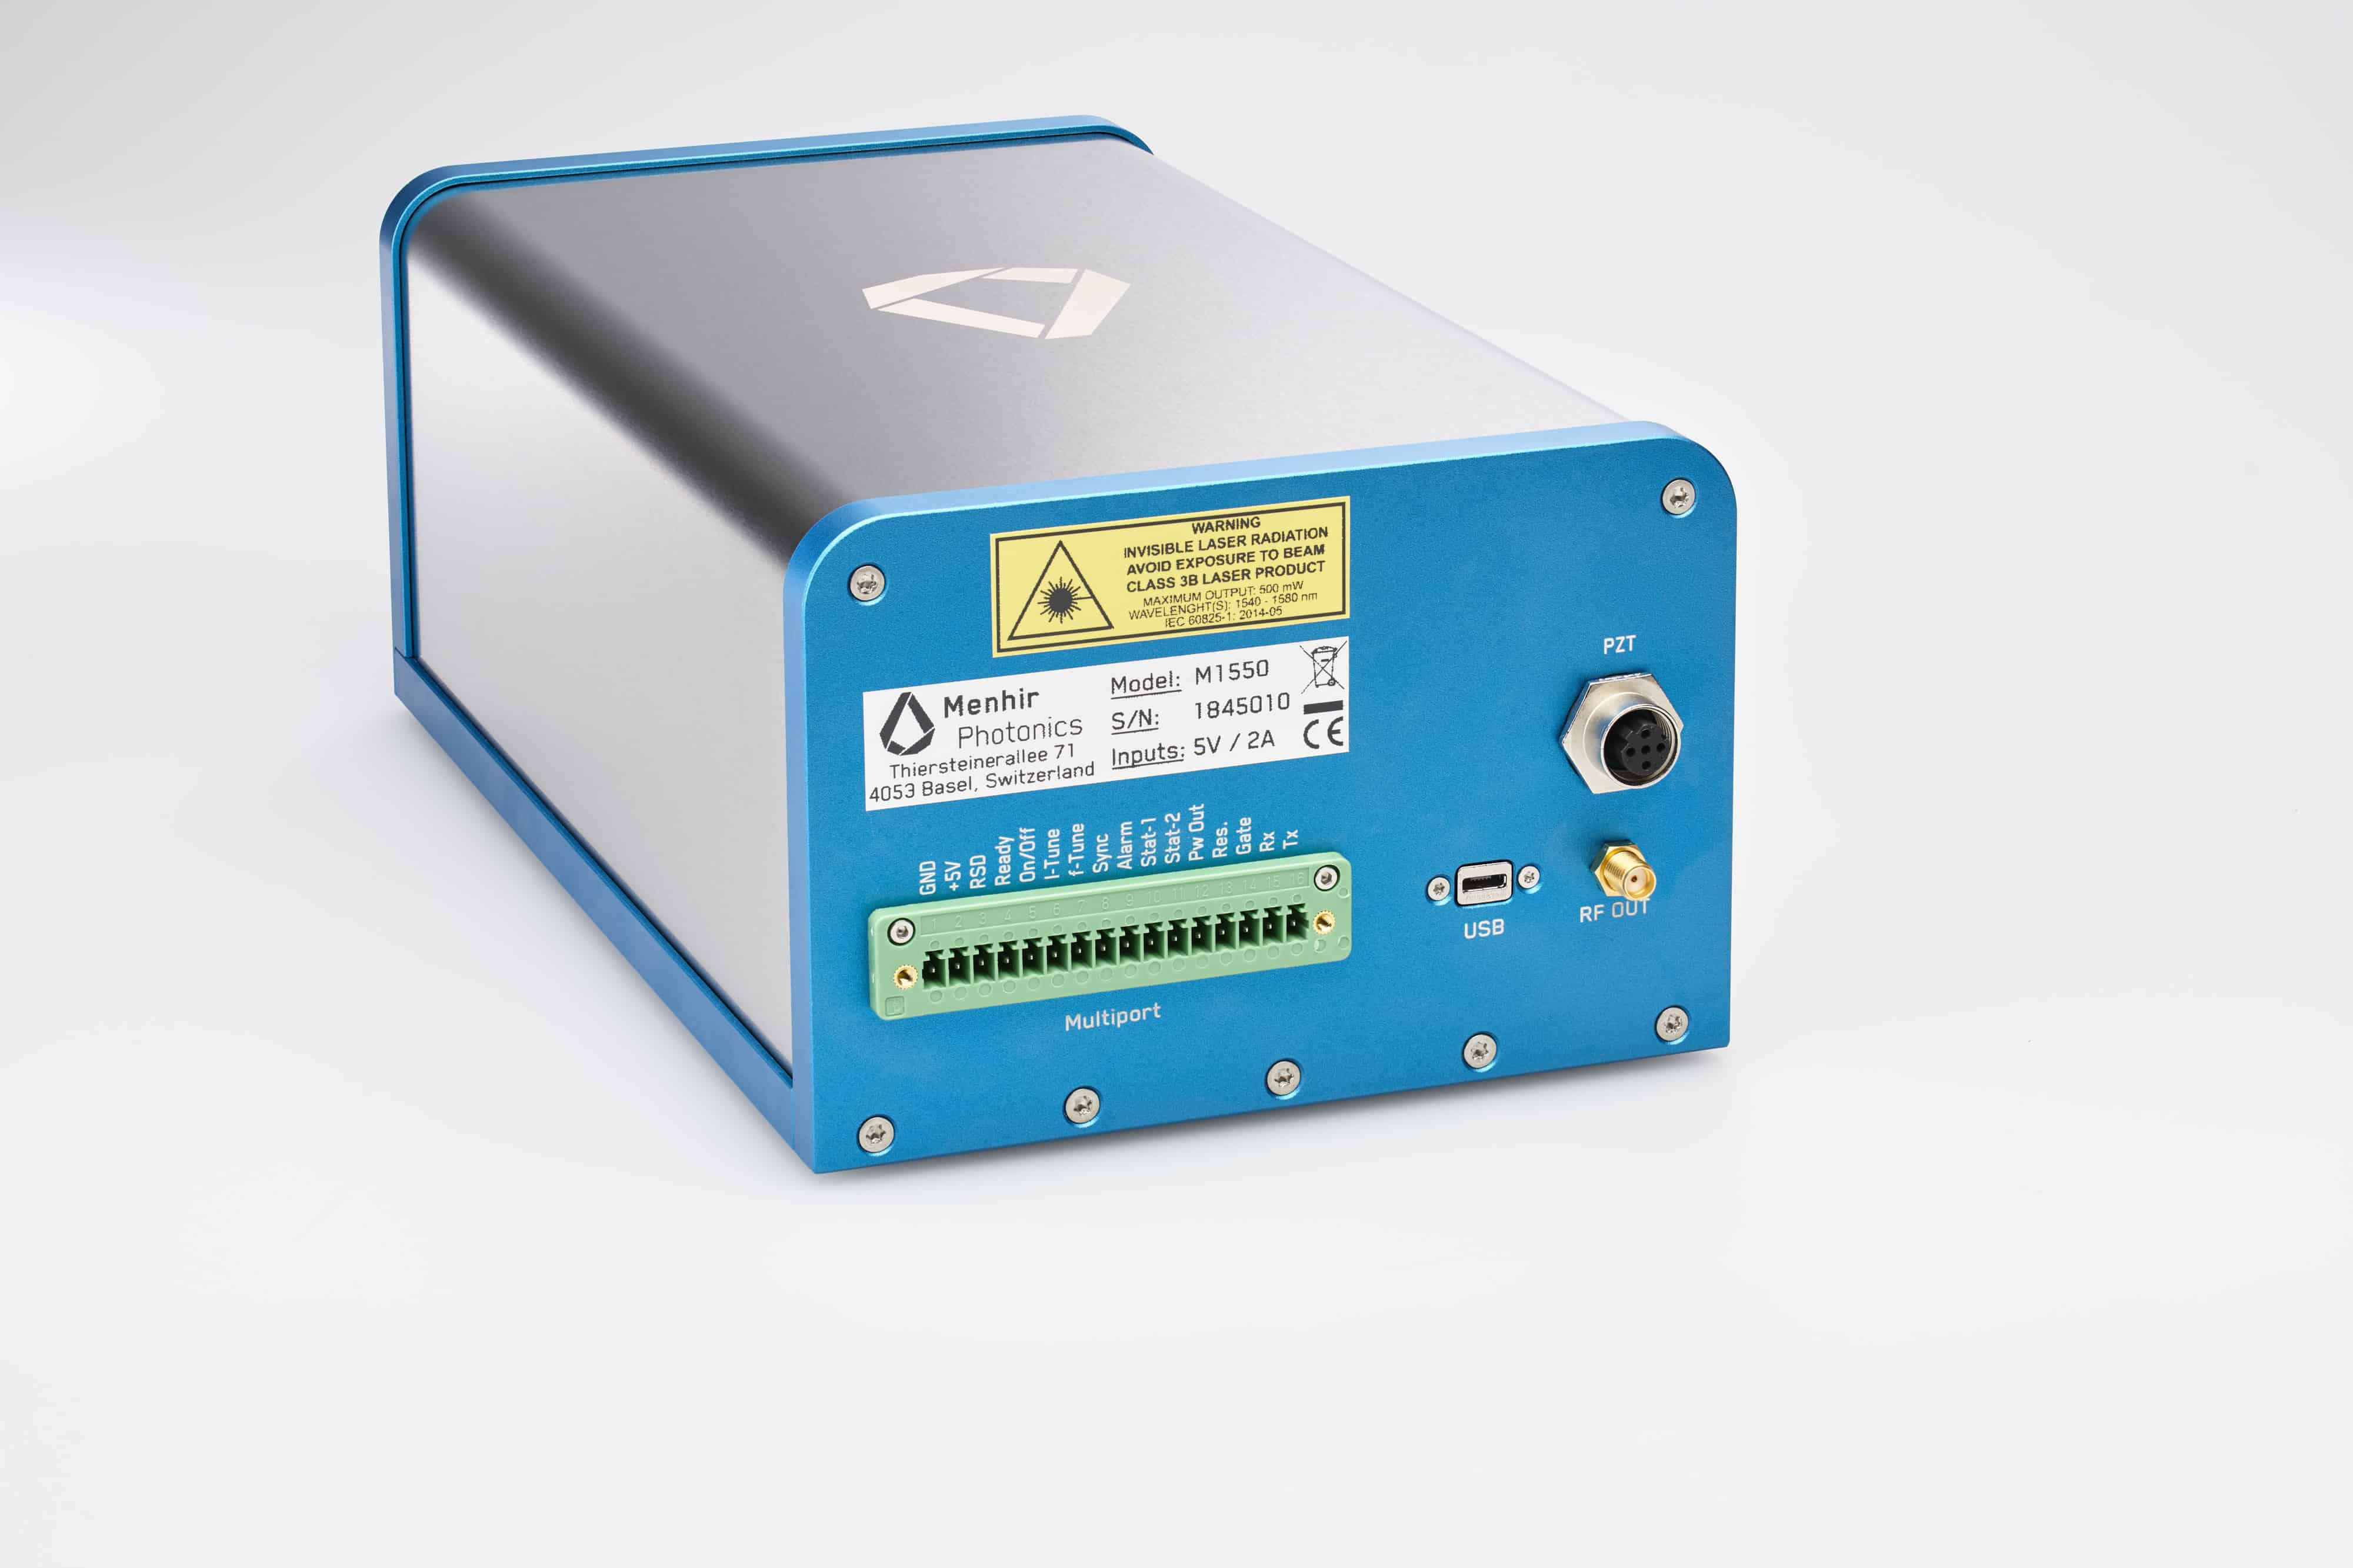 MENHIR-1550-SERIES femtosecond lasers with ultra-low noise